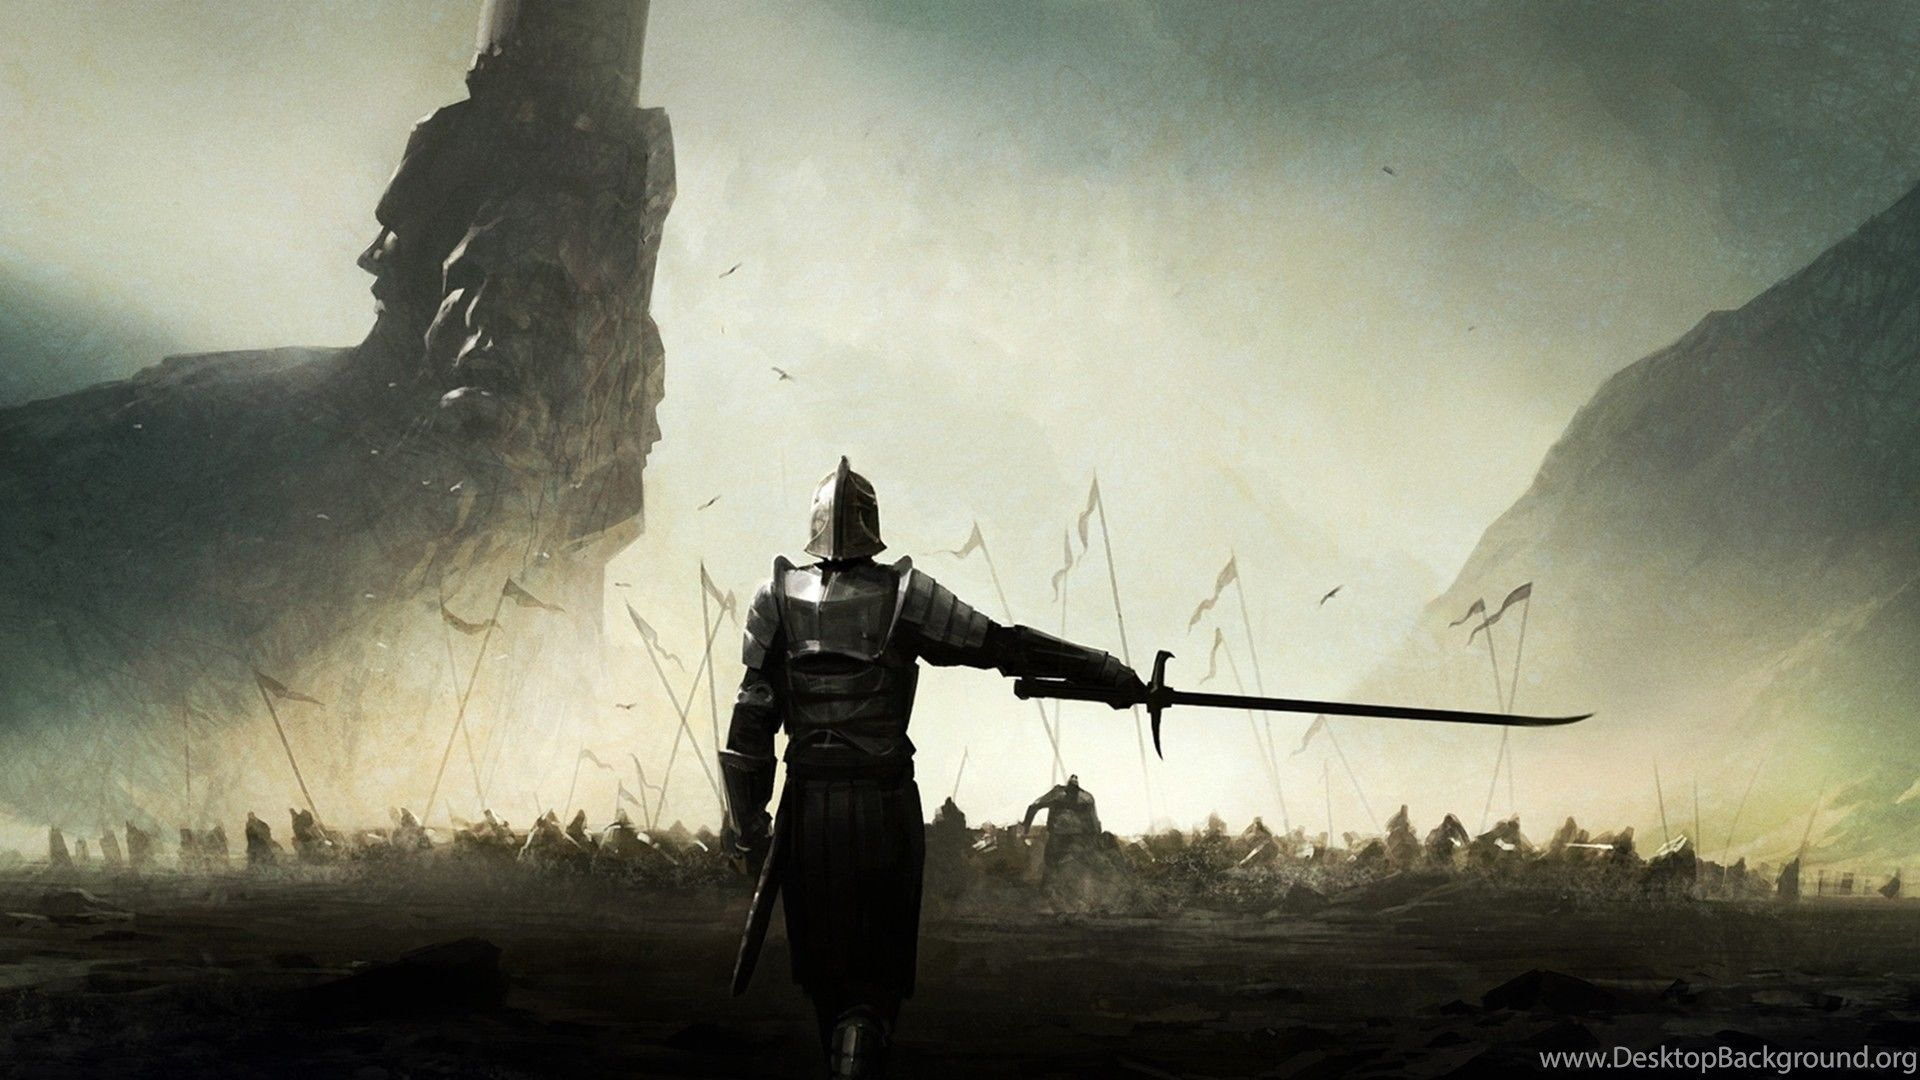 Epic war wallpapers top free epic war backgrounds - Best war wallpapers hd ...